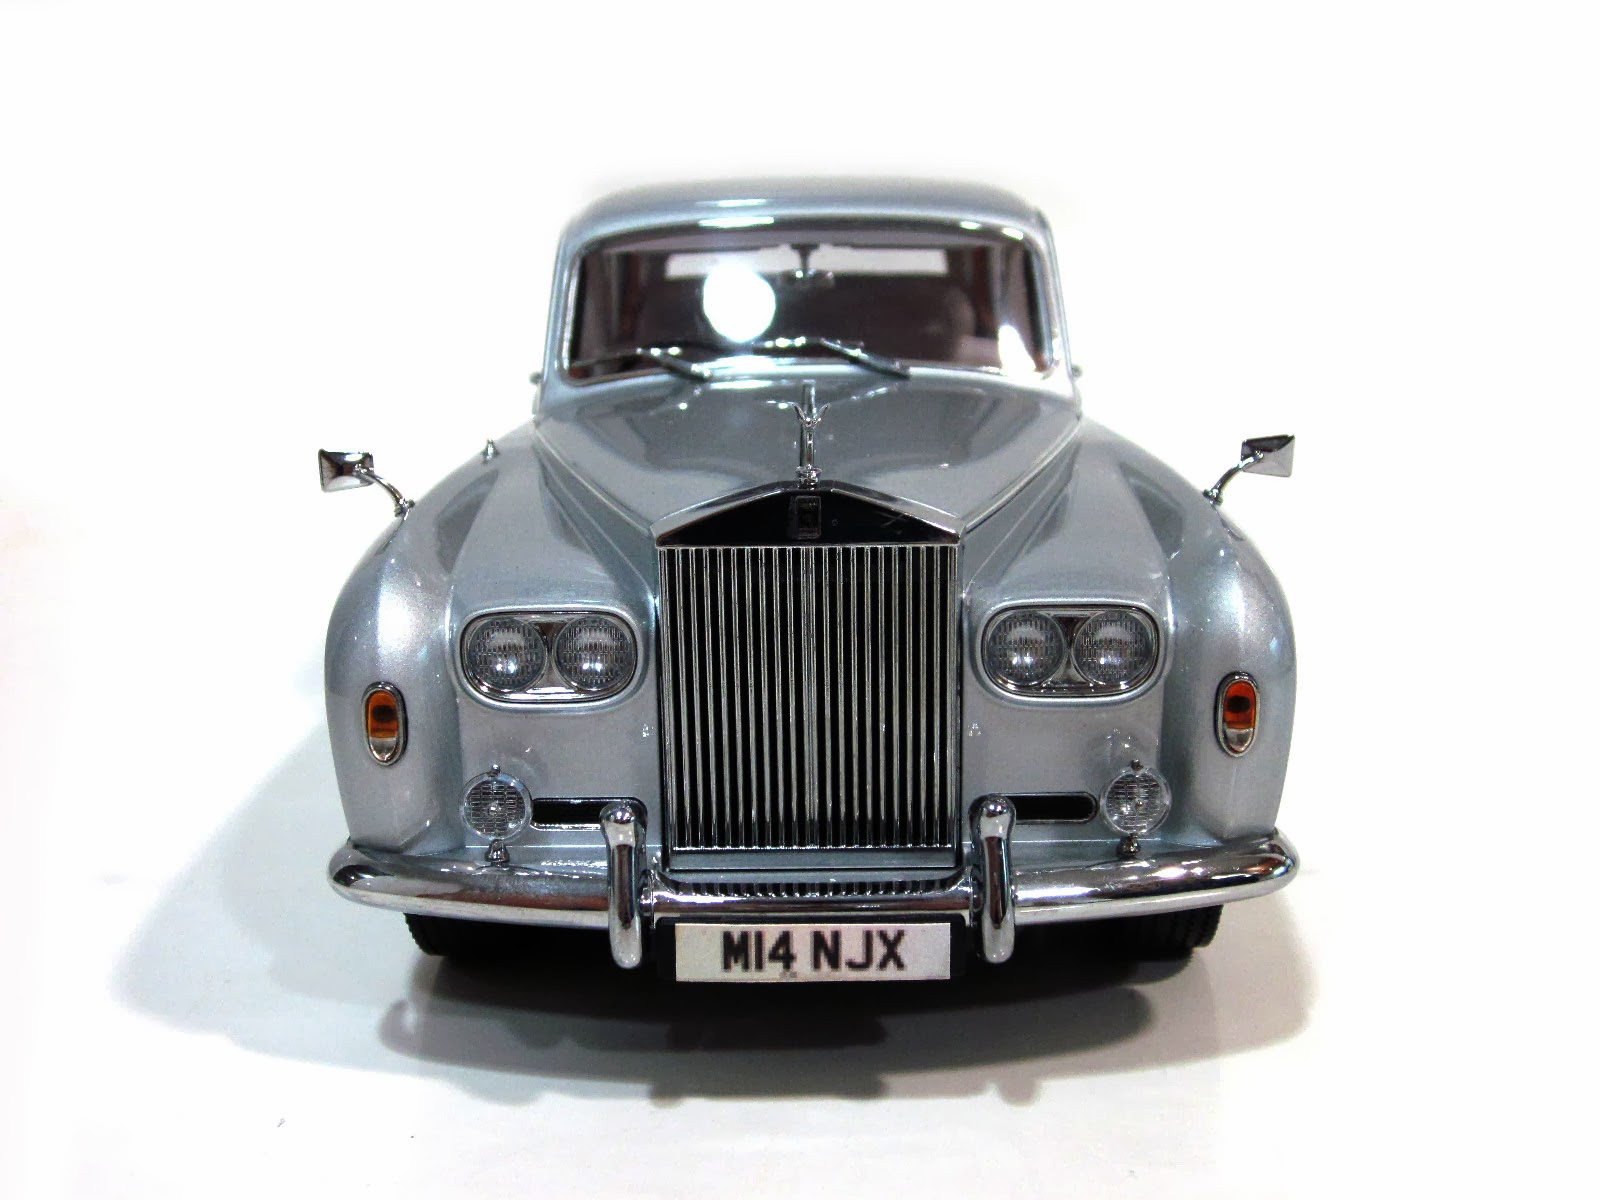 Rolls Royce Phantom V LWB '64 - Paragon Models